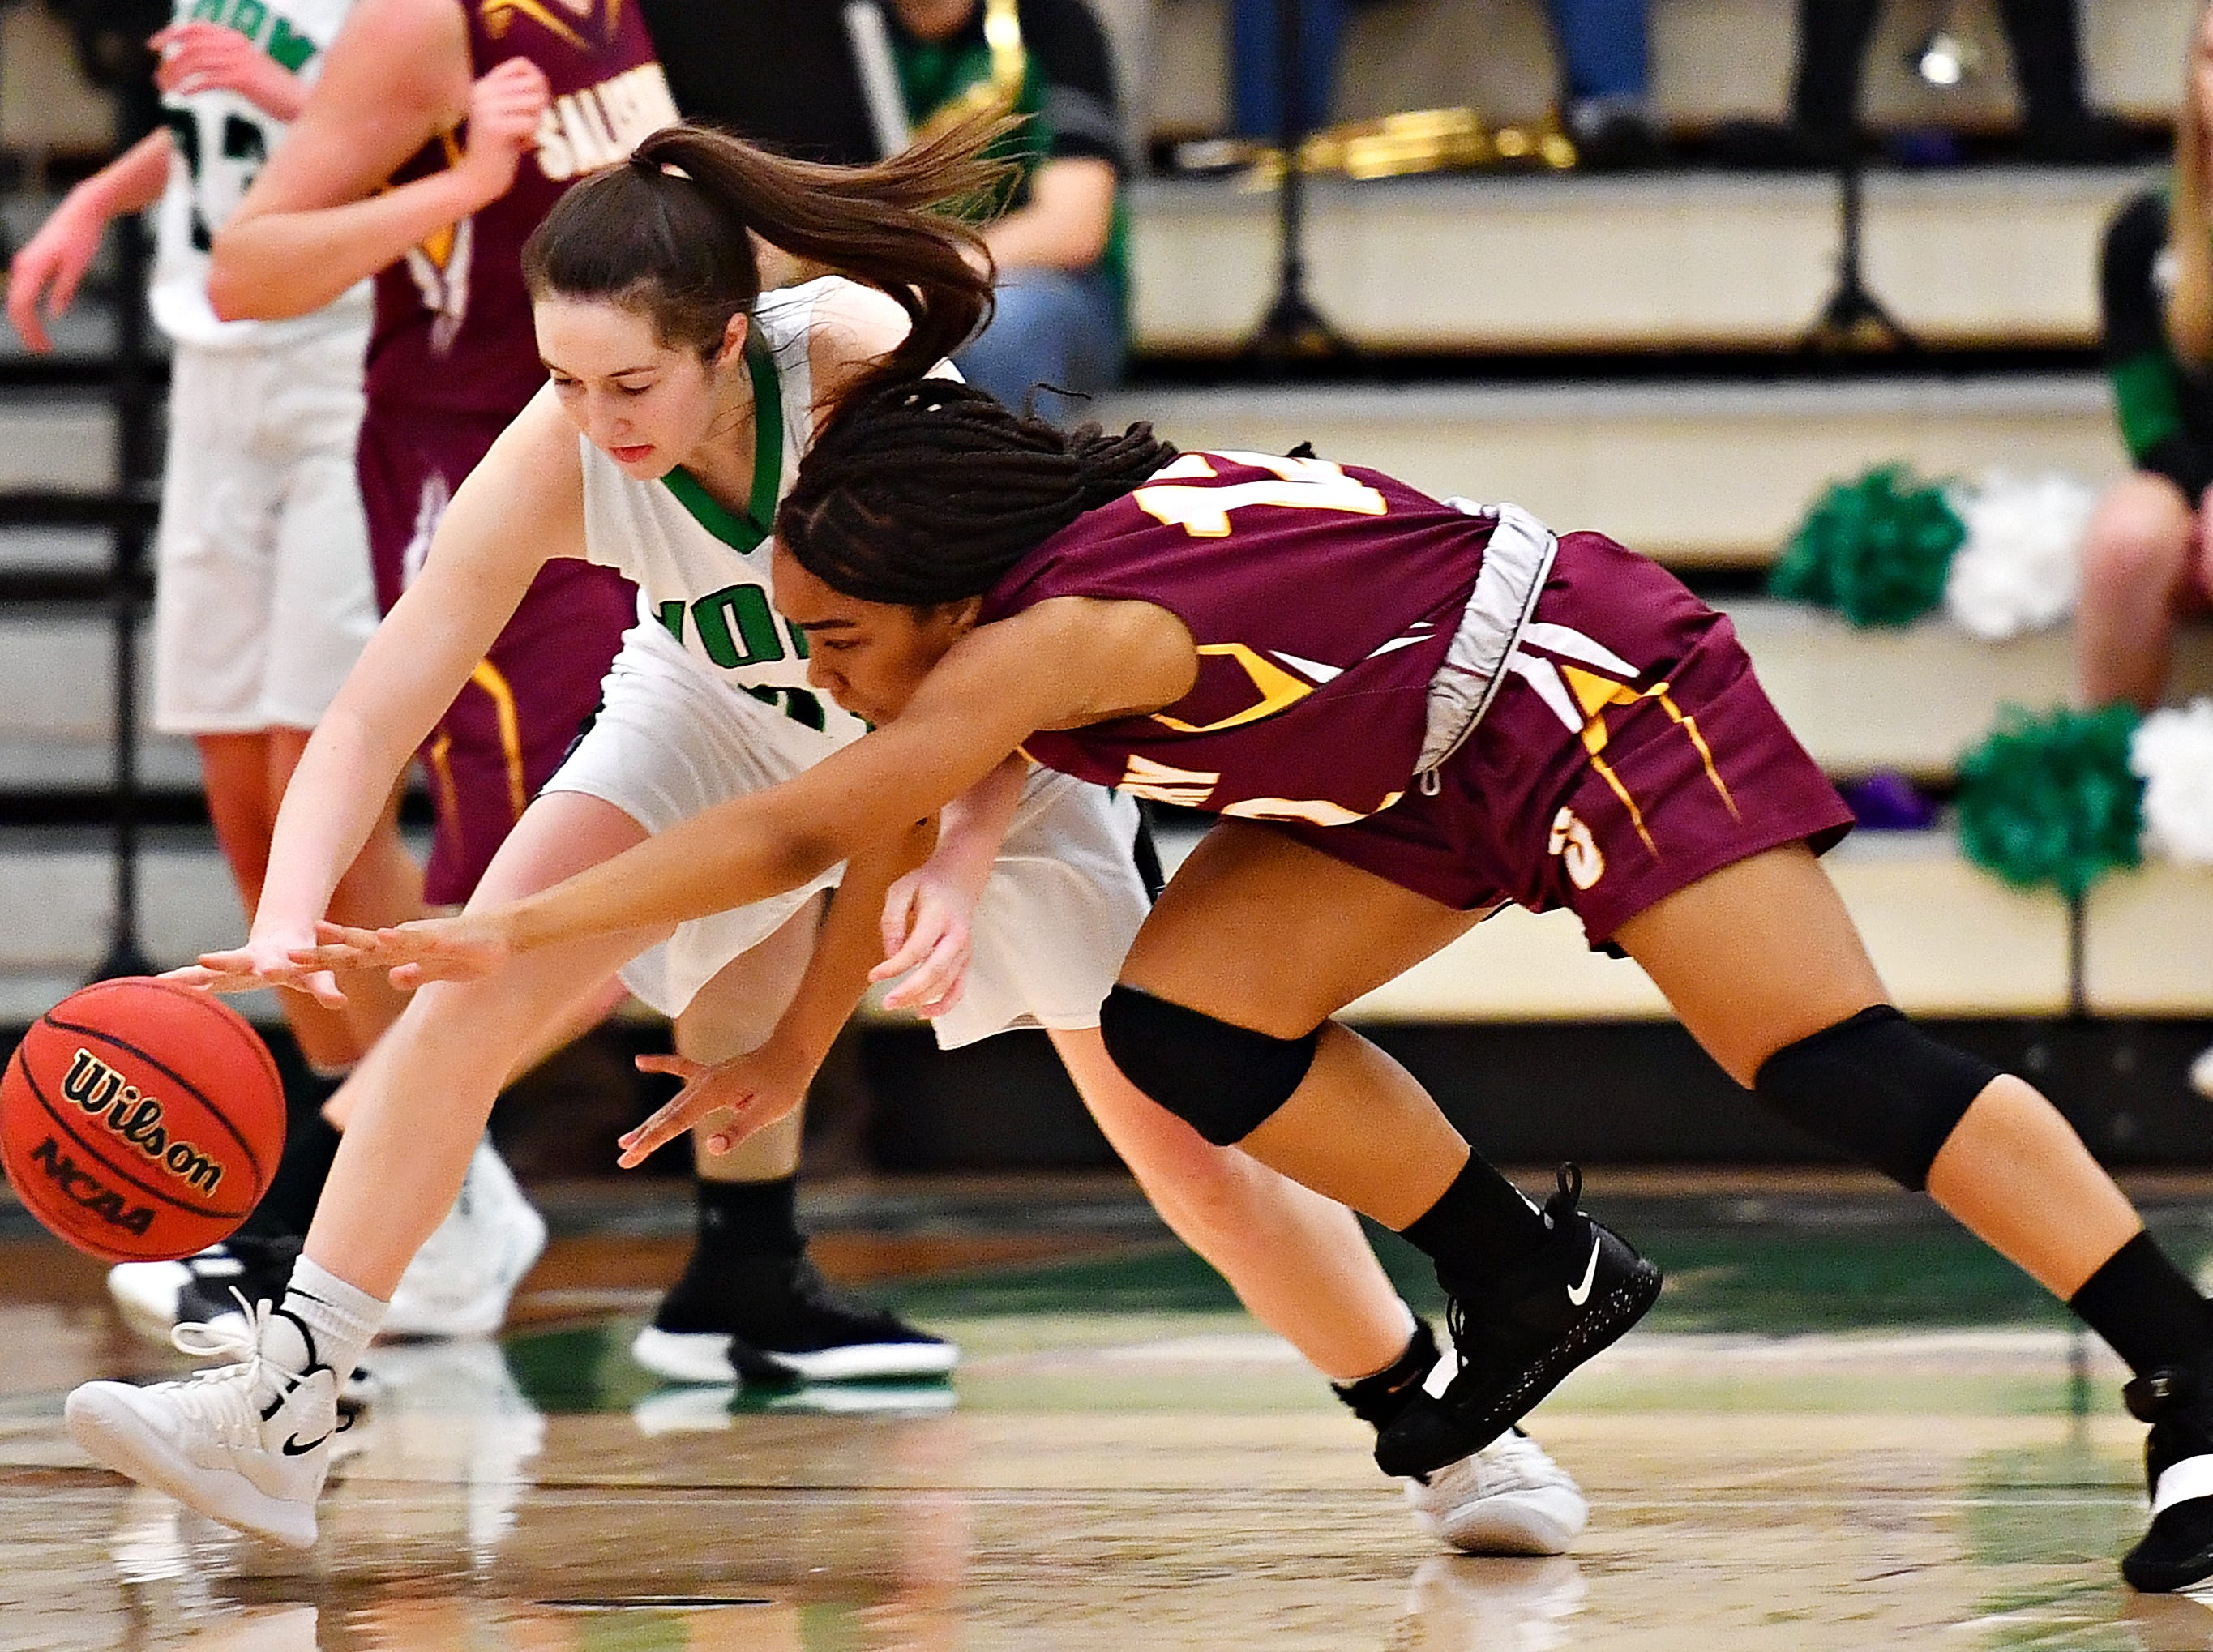 York College vs Salisbury during women's basketball action at Grumbacher Sport and Fitness Center at York College of Pennsylvania in Spring Garden Township, Wednesday, Feb. 6, 2019. Dawn J. Sagert photo